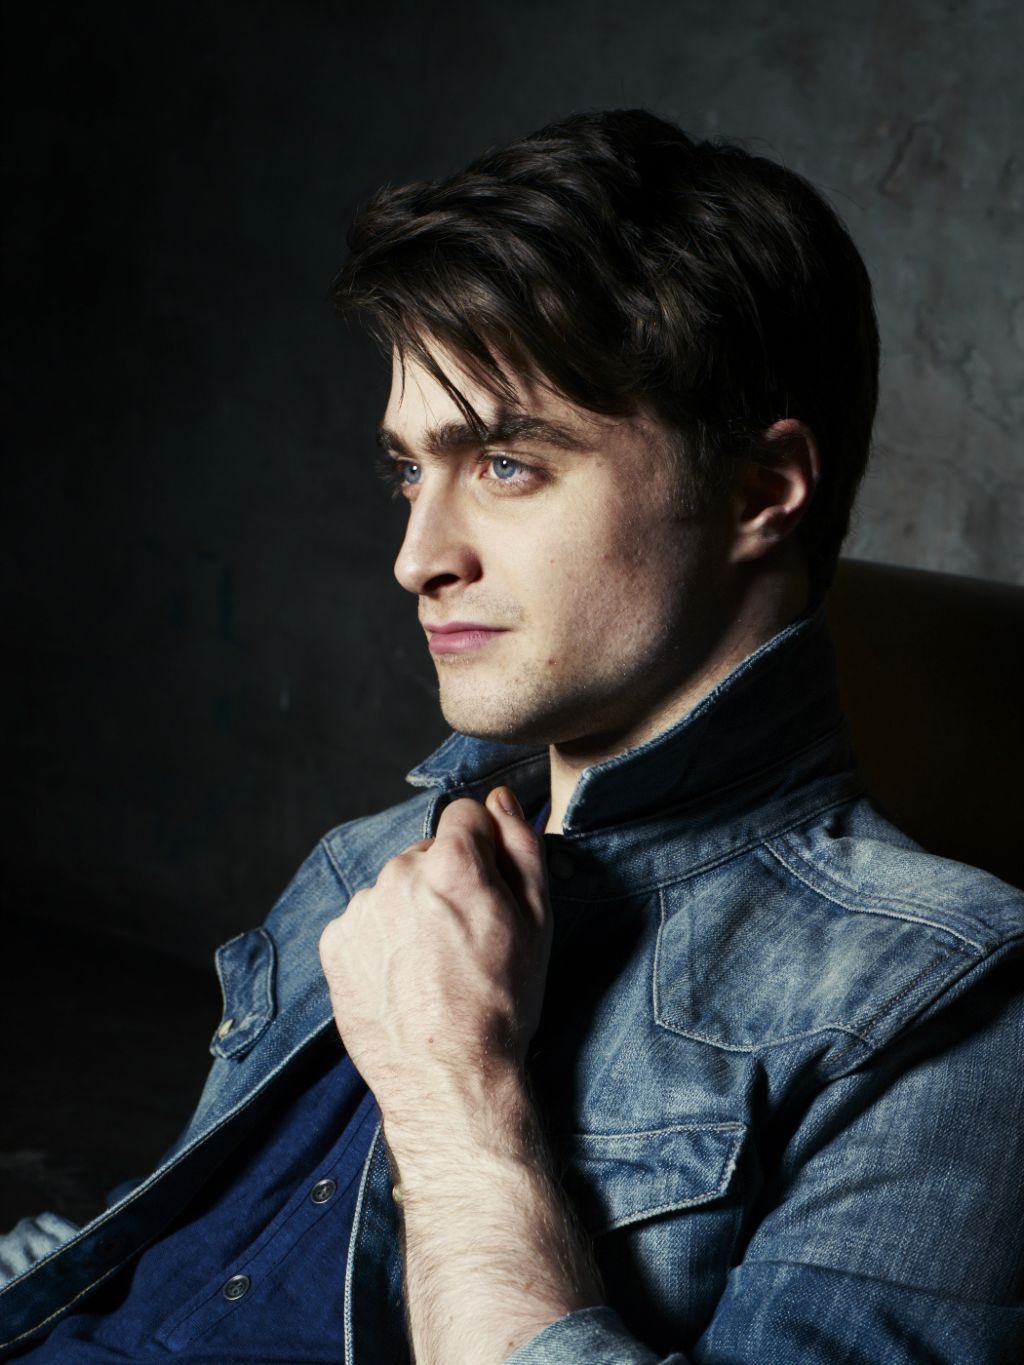 Daniel Radcliffe images Warwick Saint 2011 HD wallpaper and background ... Daniel